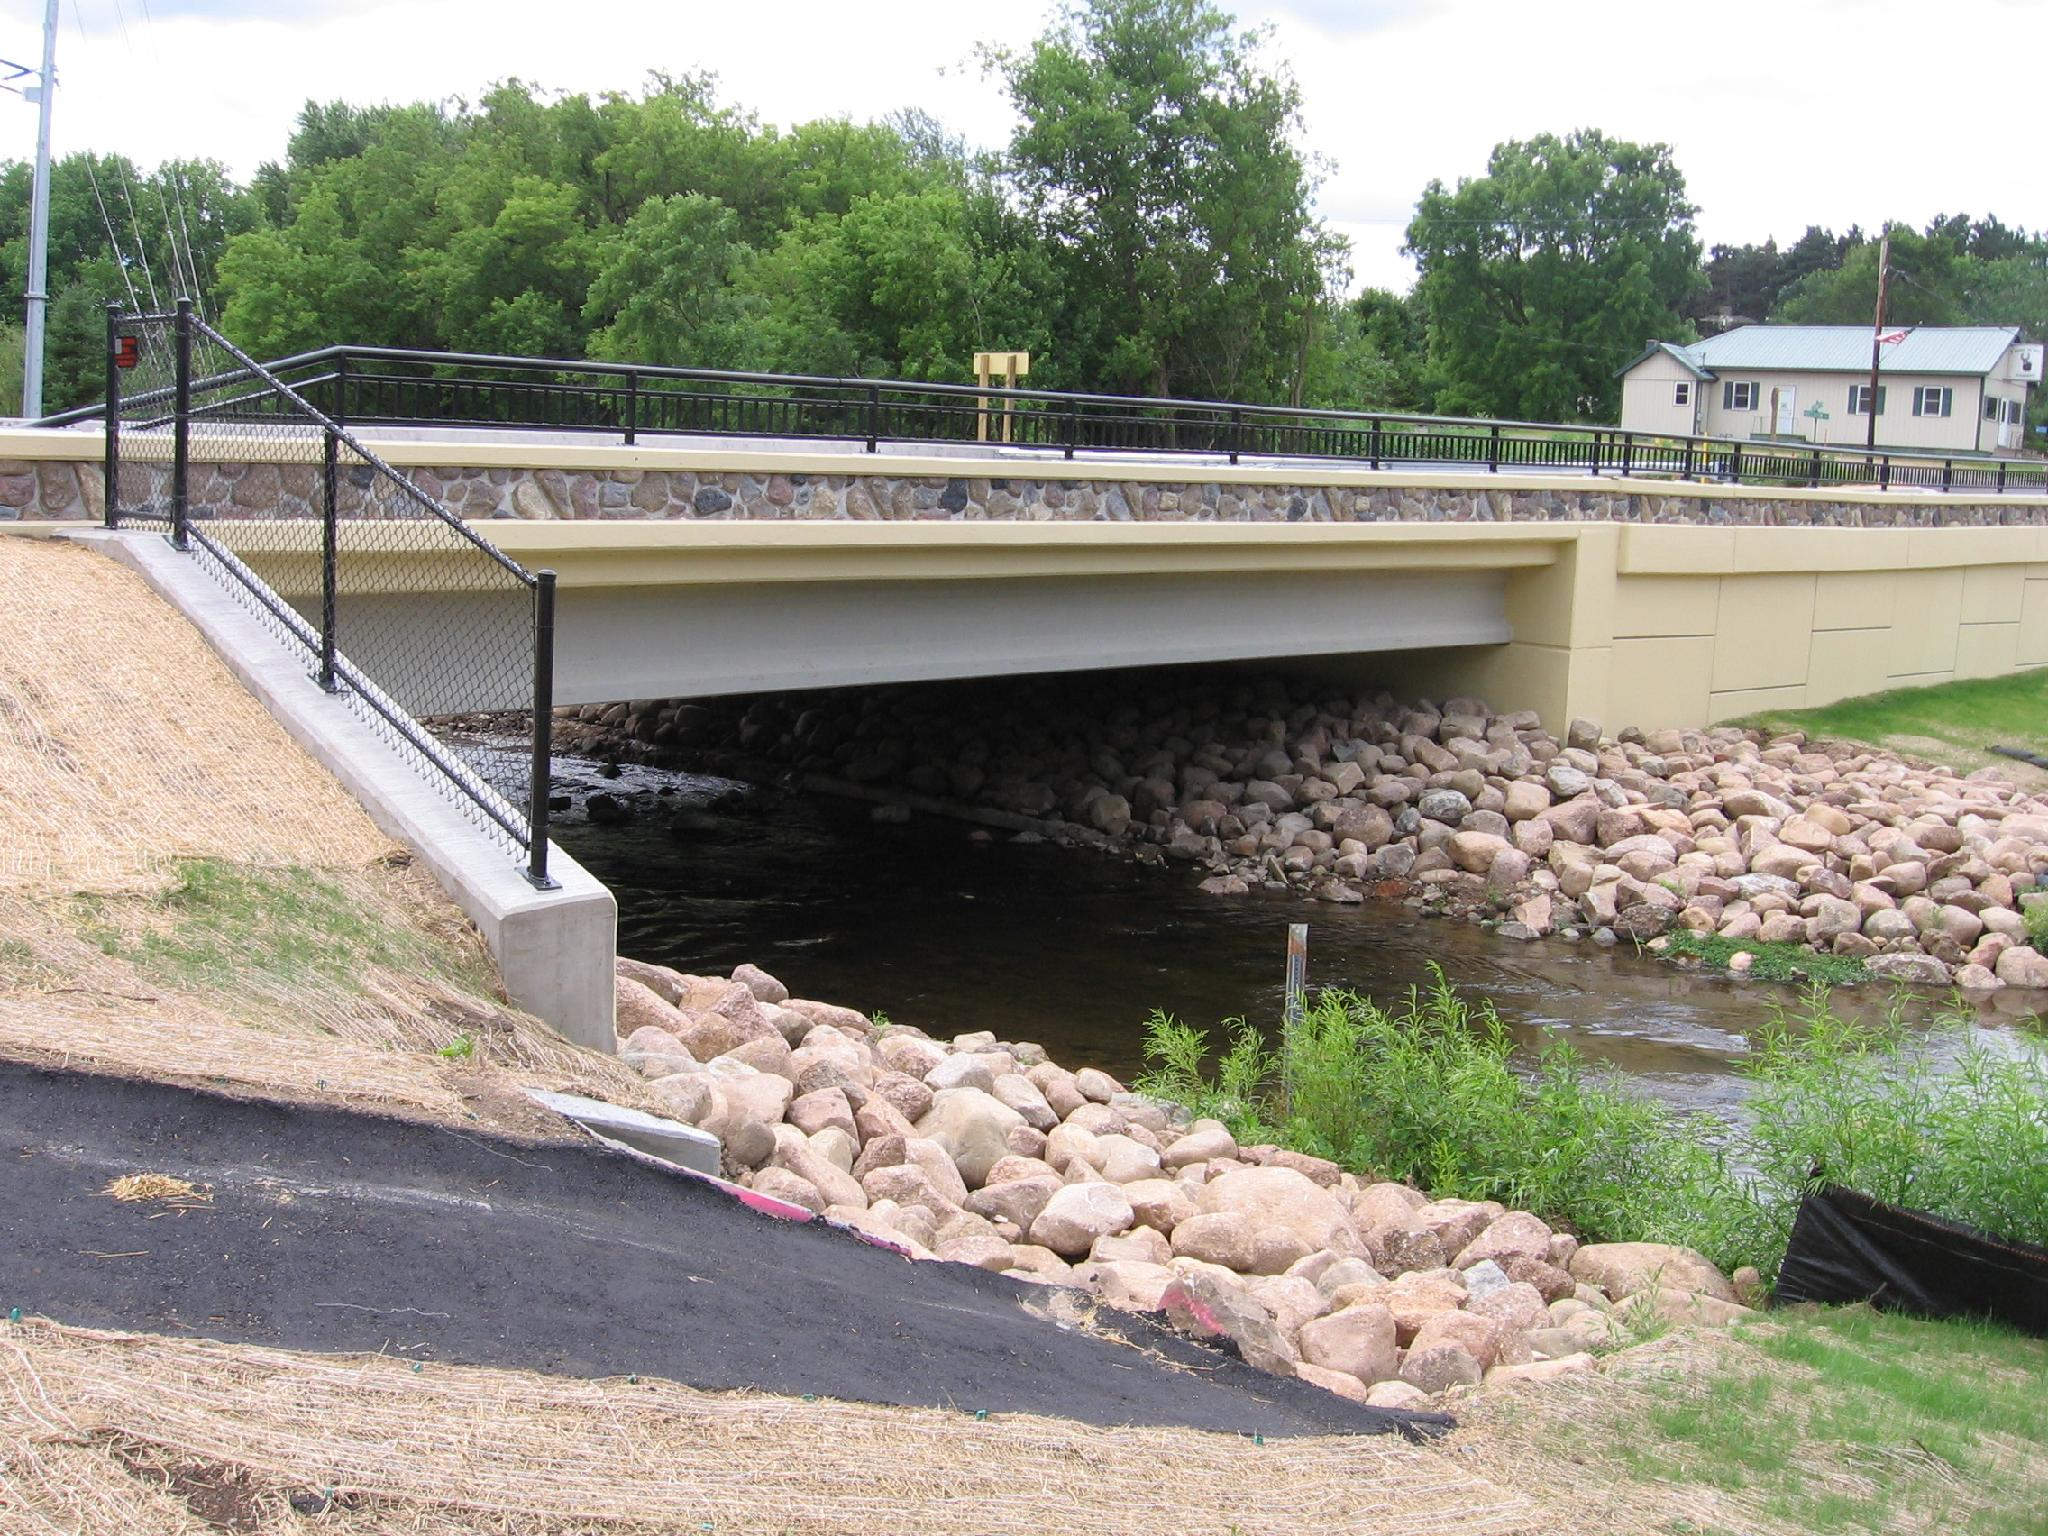 Precast Bridges Wisconsin Department Of Transportation Bridge Manual Standard Drawings